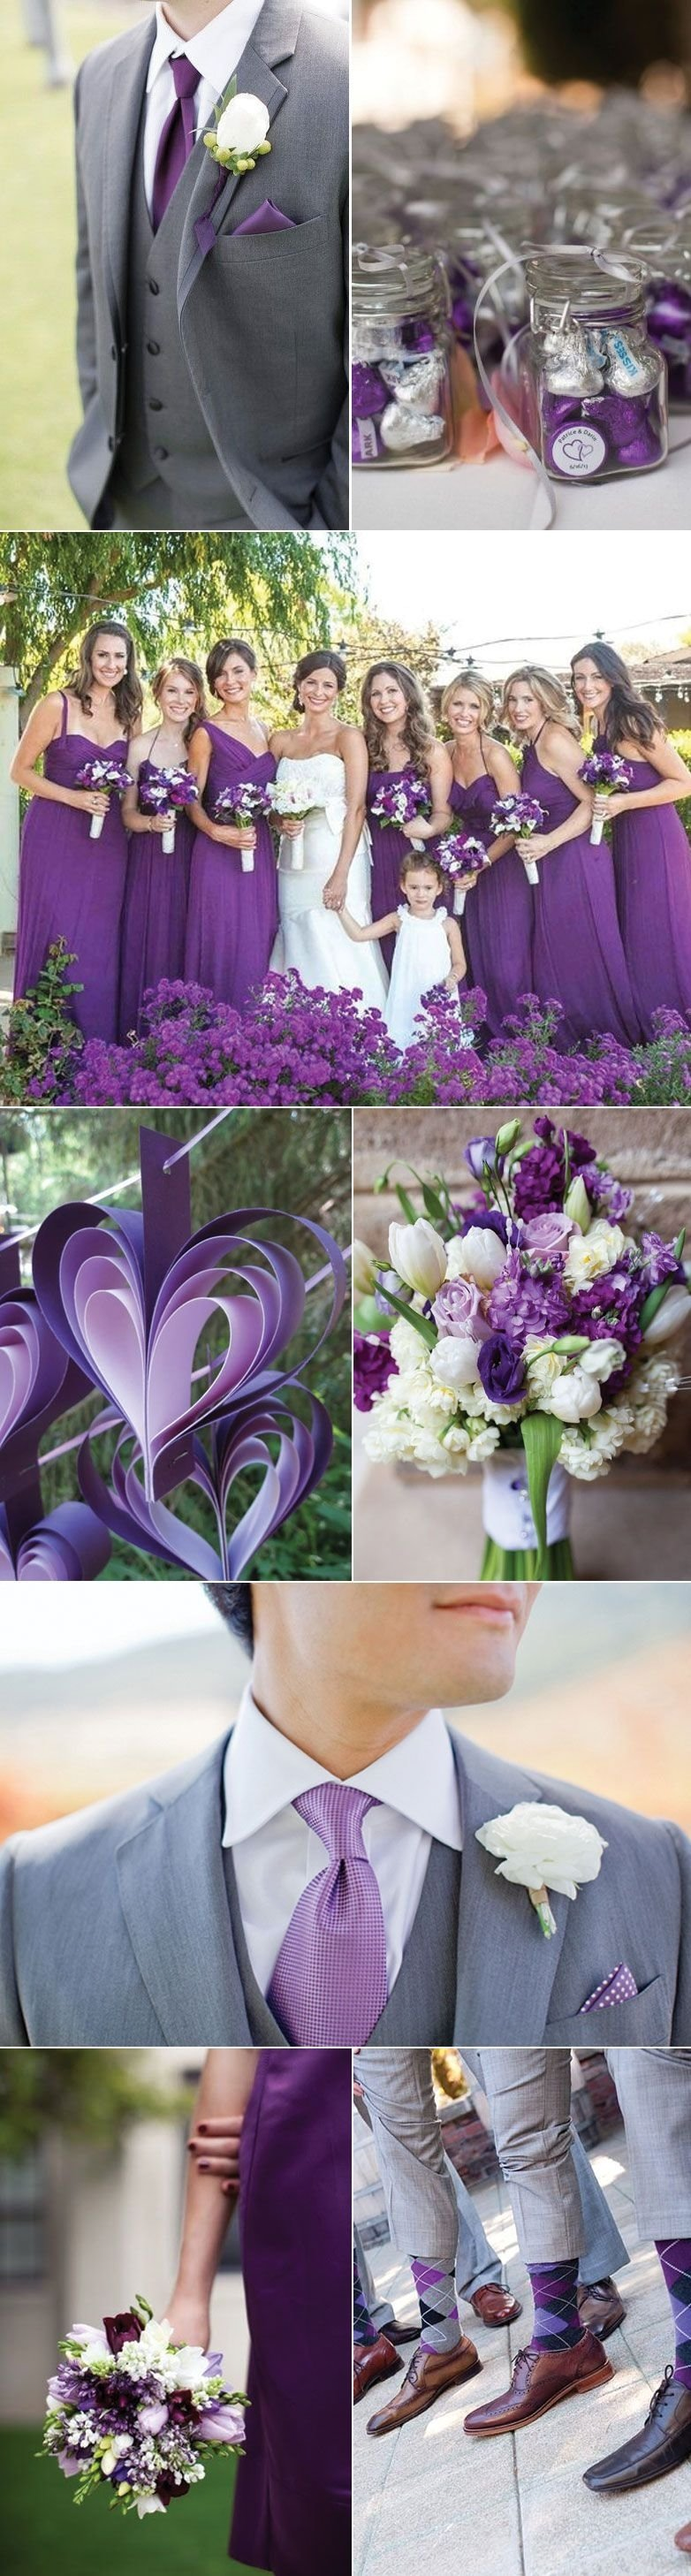 10 Fabulous Purple And Silver Wedding Ideas mulberry wedding ideas and visual inspiration wedding color